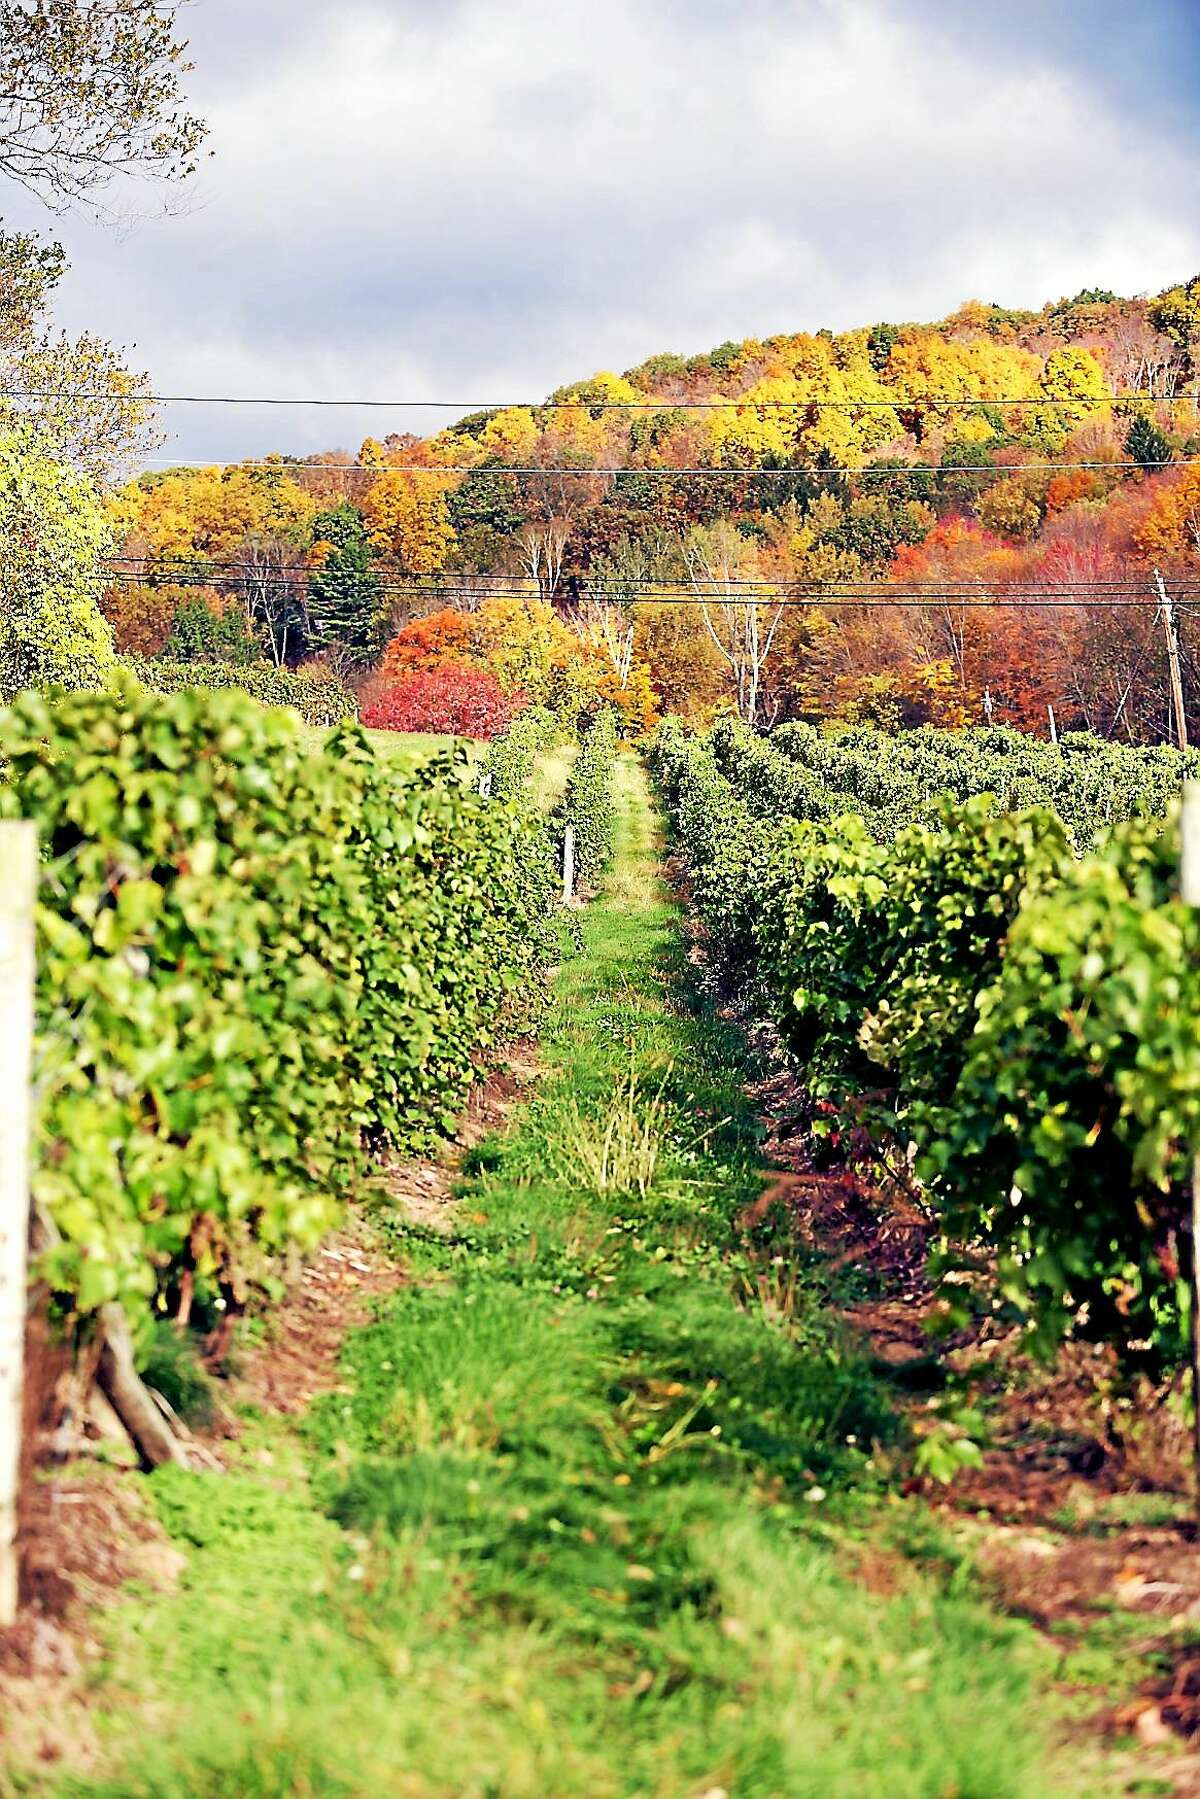 Submitted photo - Hopkins Vineyard Above, a view of the Hopkins Vineyard during the fall season.